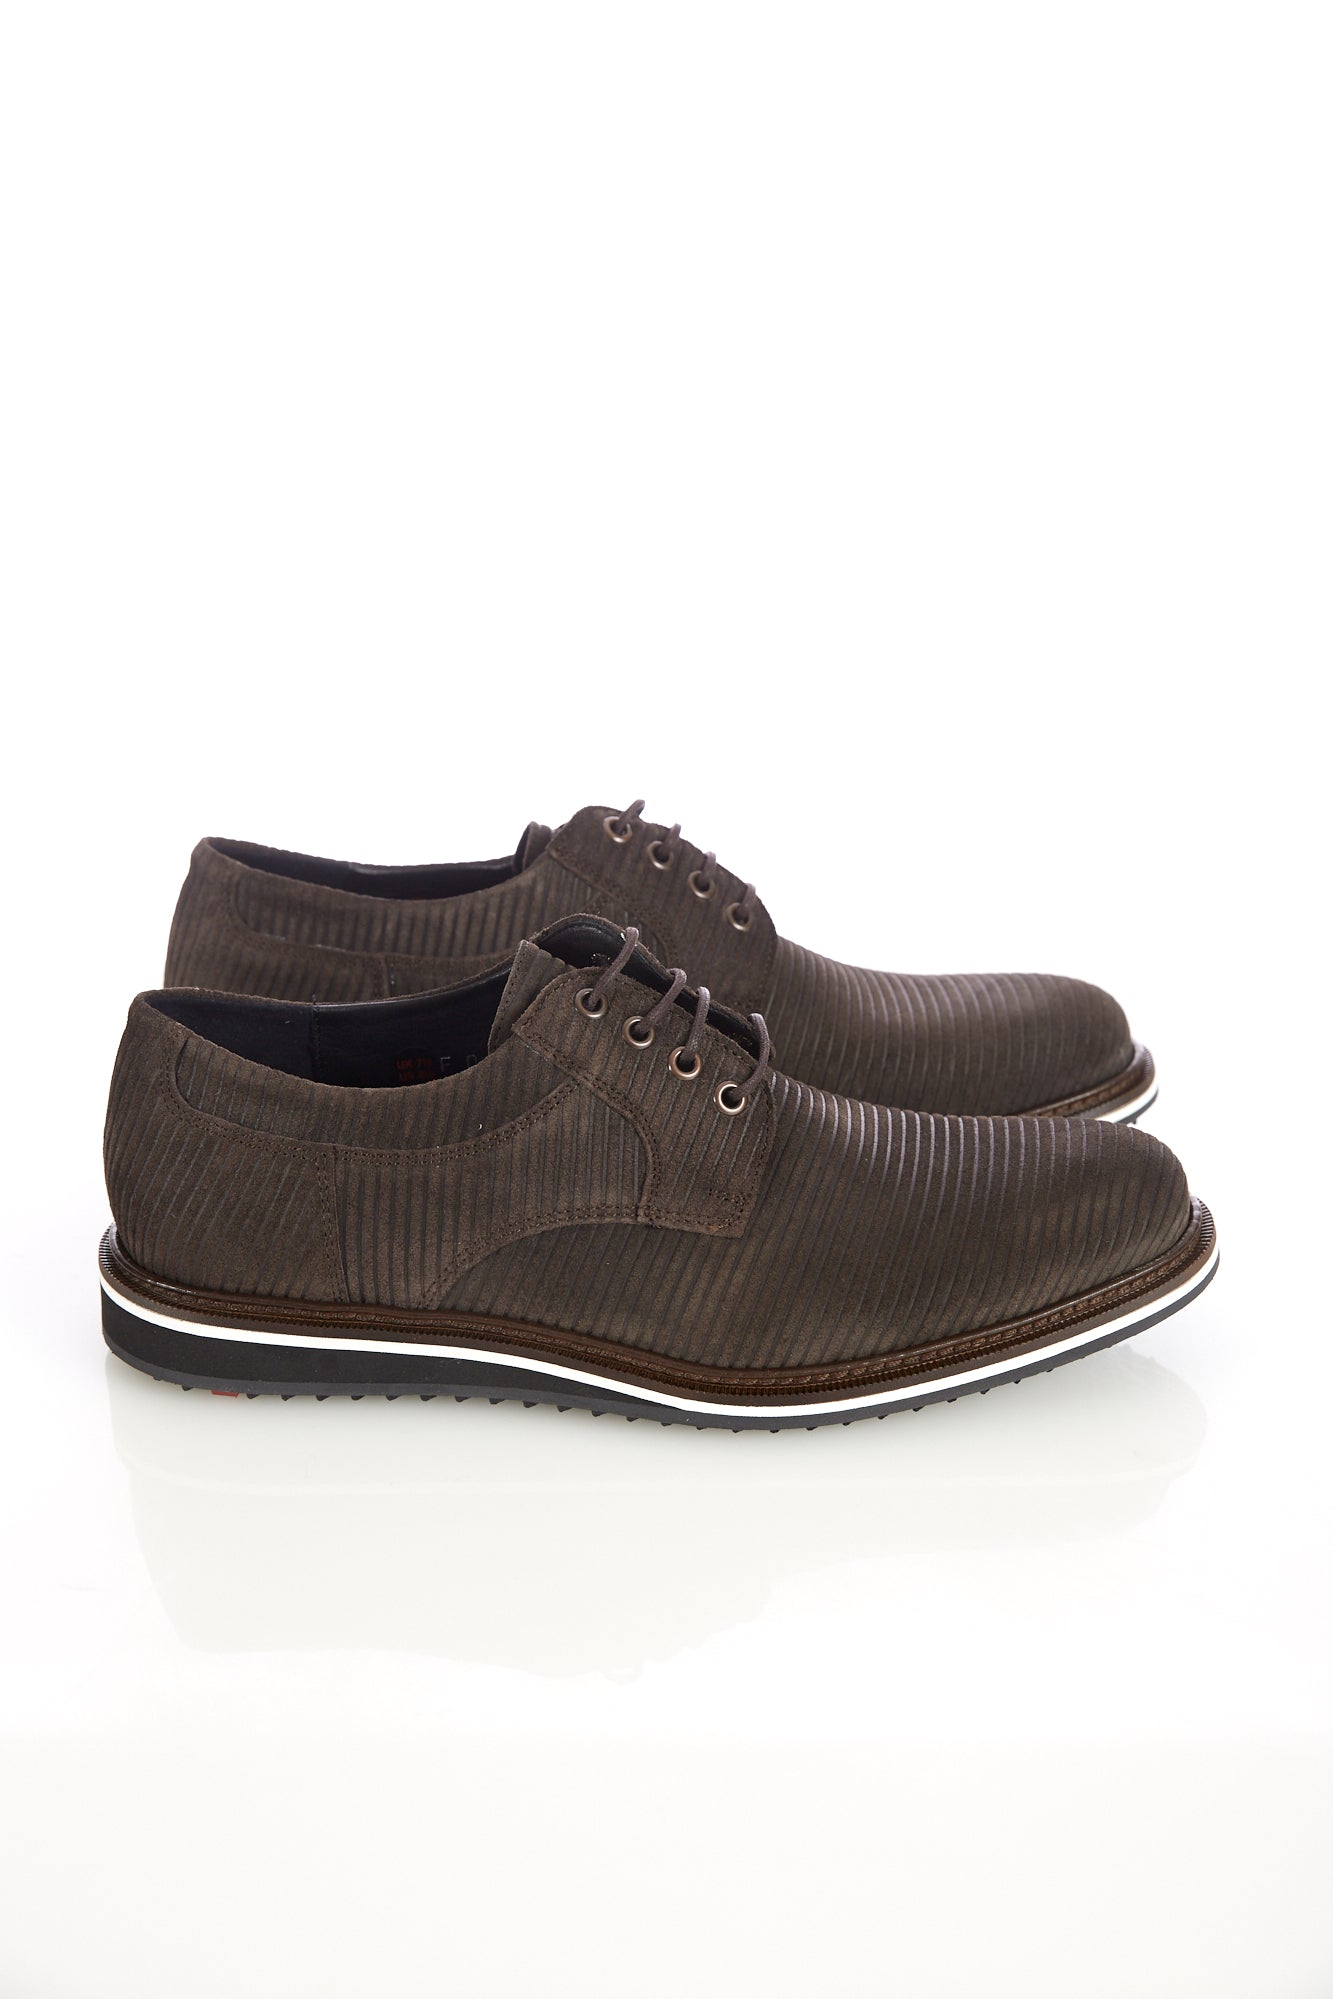 Lloyd 'Frederic' Brown Suede Cord Shoe - Shoes - Lloyd - LALONDE's